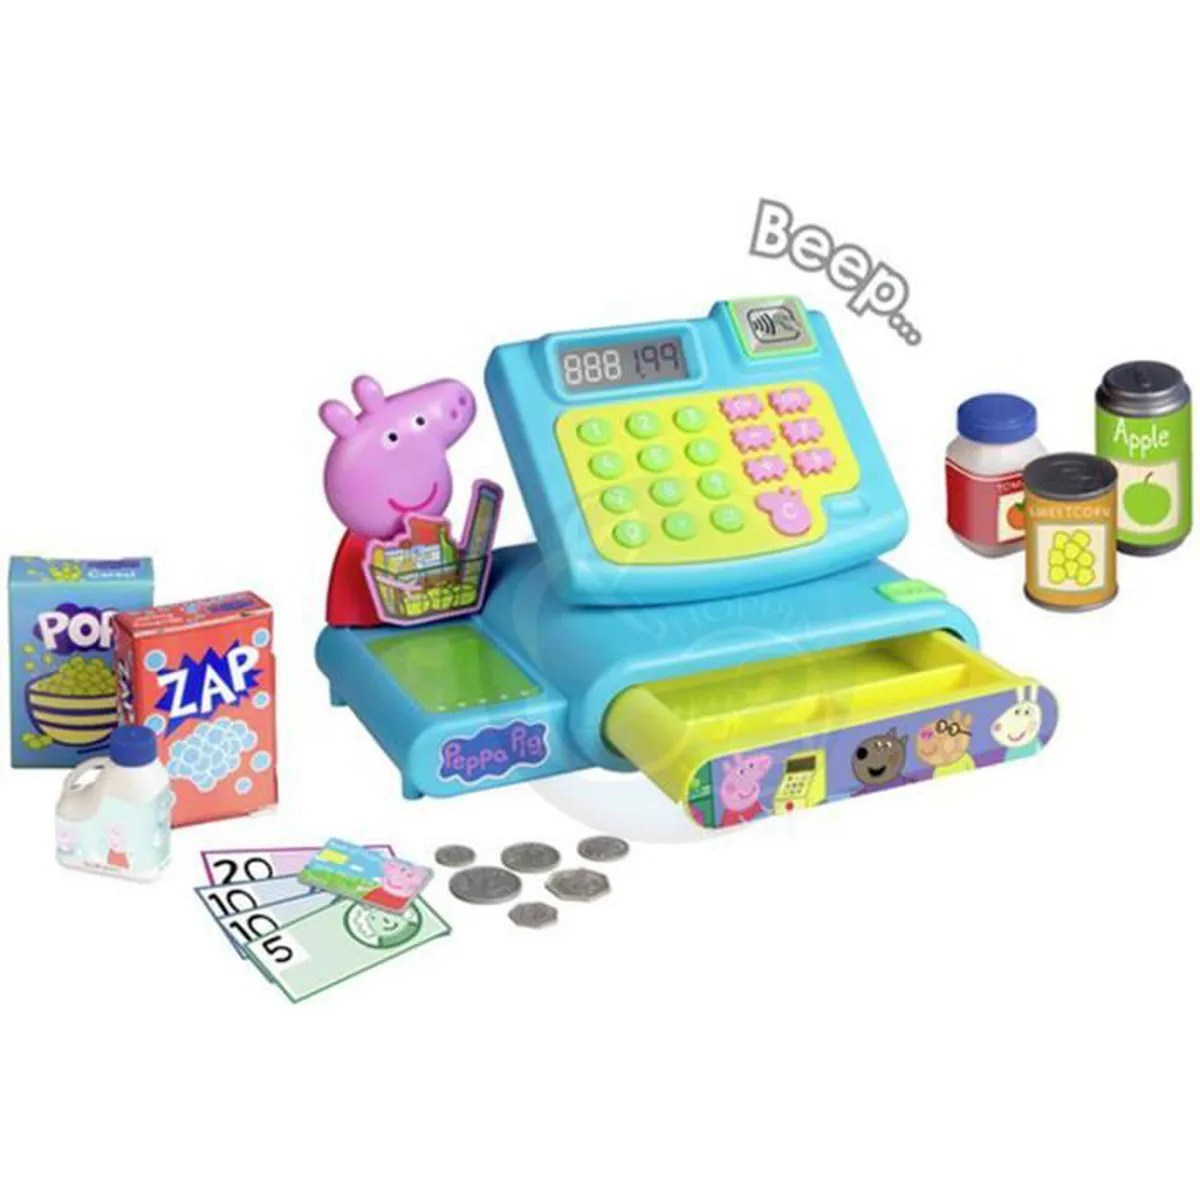 Jouet Enfant 3 Ans Peppa Pig Caisse Enregistreuse It S Shopping Day With Peppa